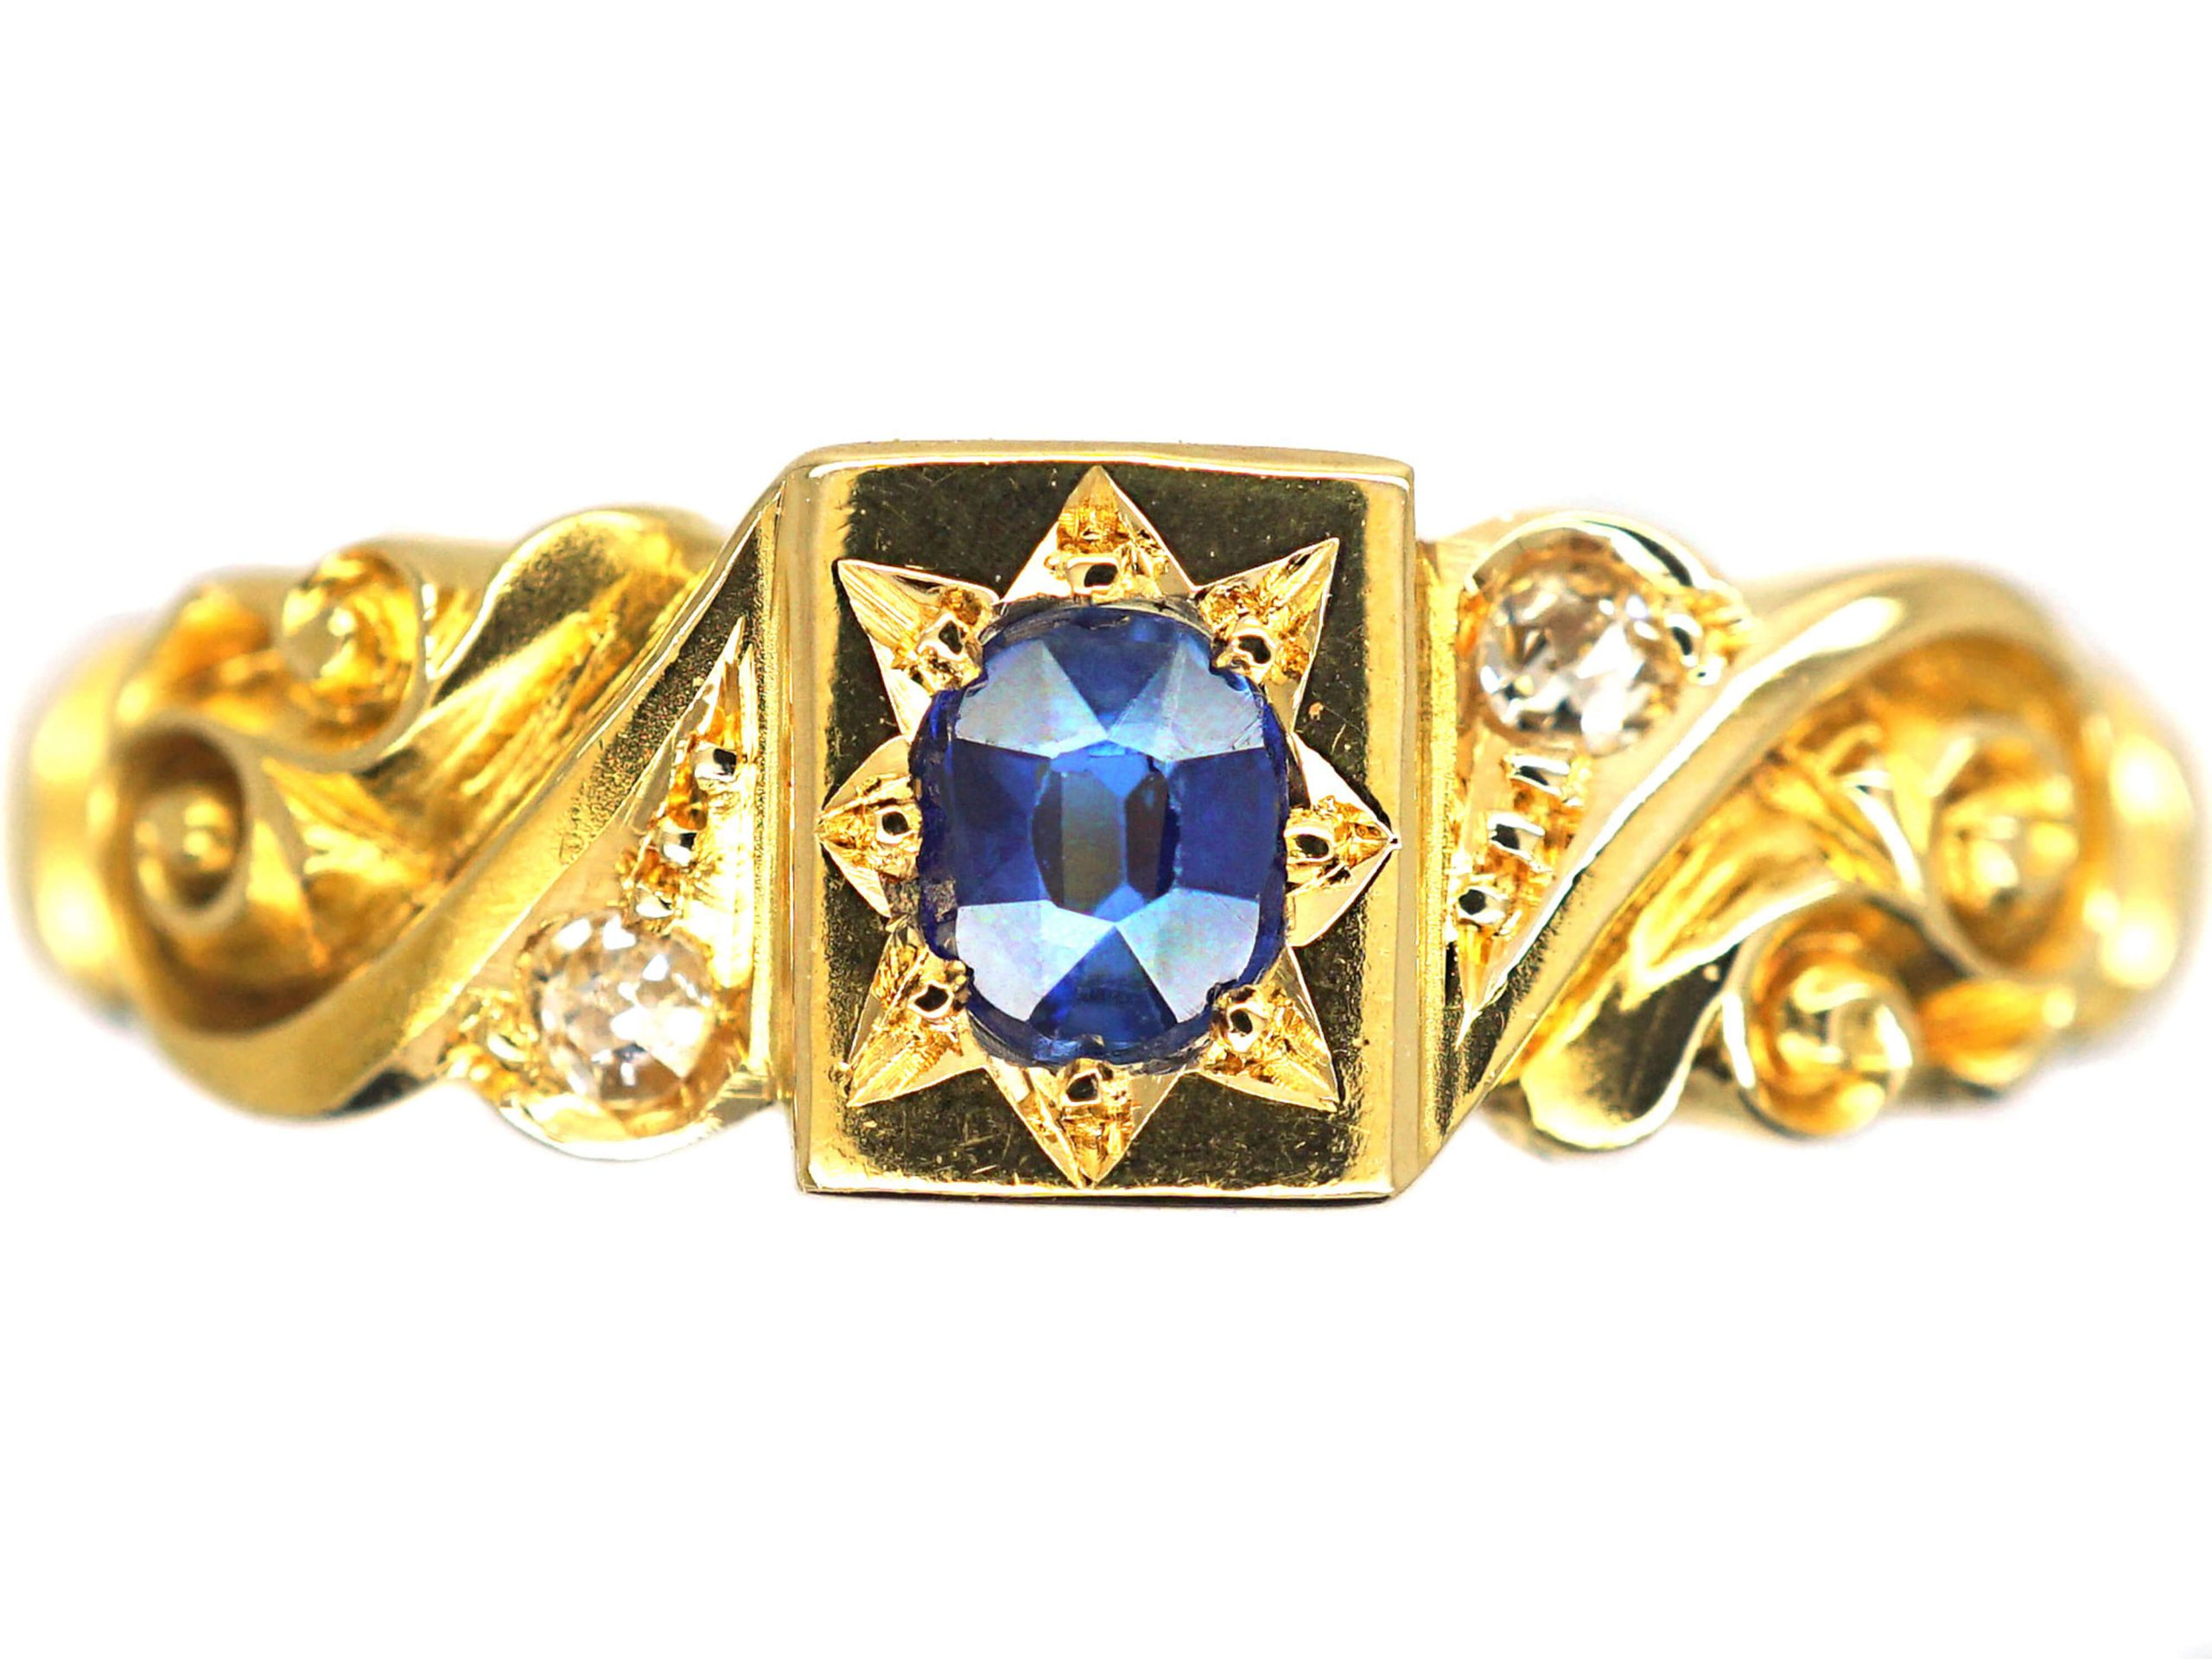 Edwardian 18ct Gold, Sapphire & Diamond Gypsy Ring with Scroll Design Shoulders